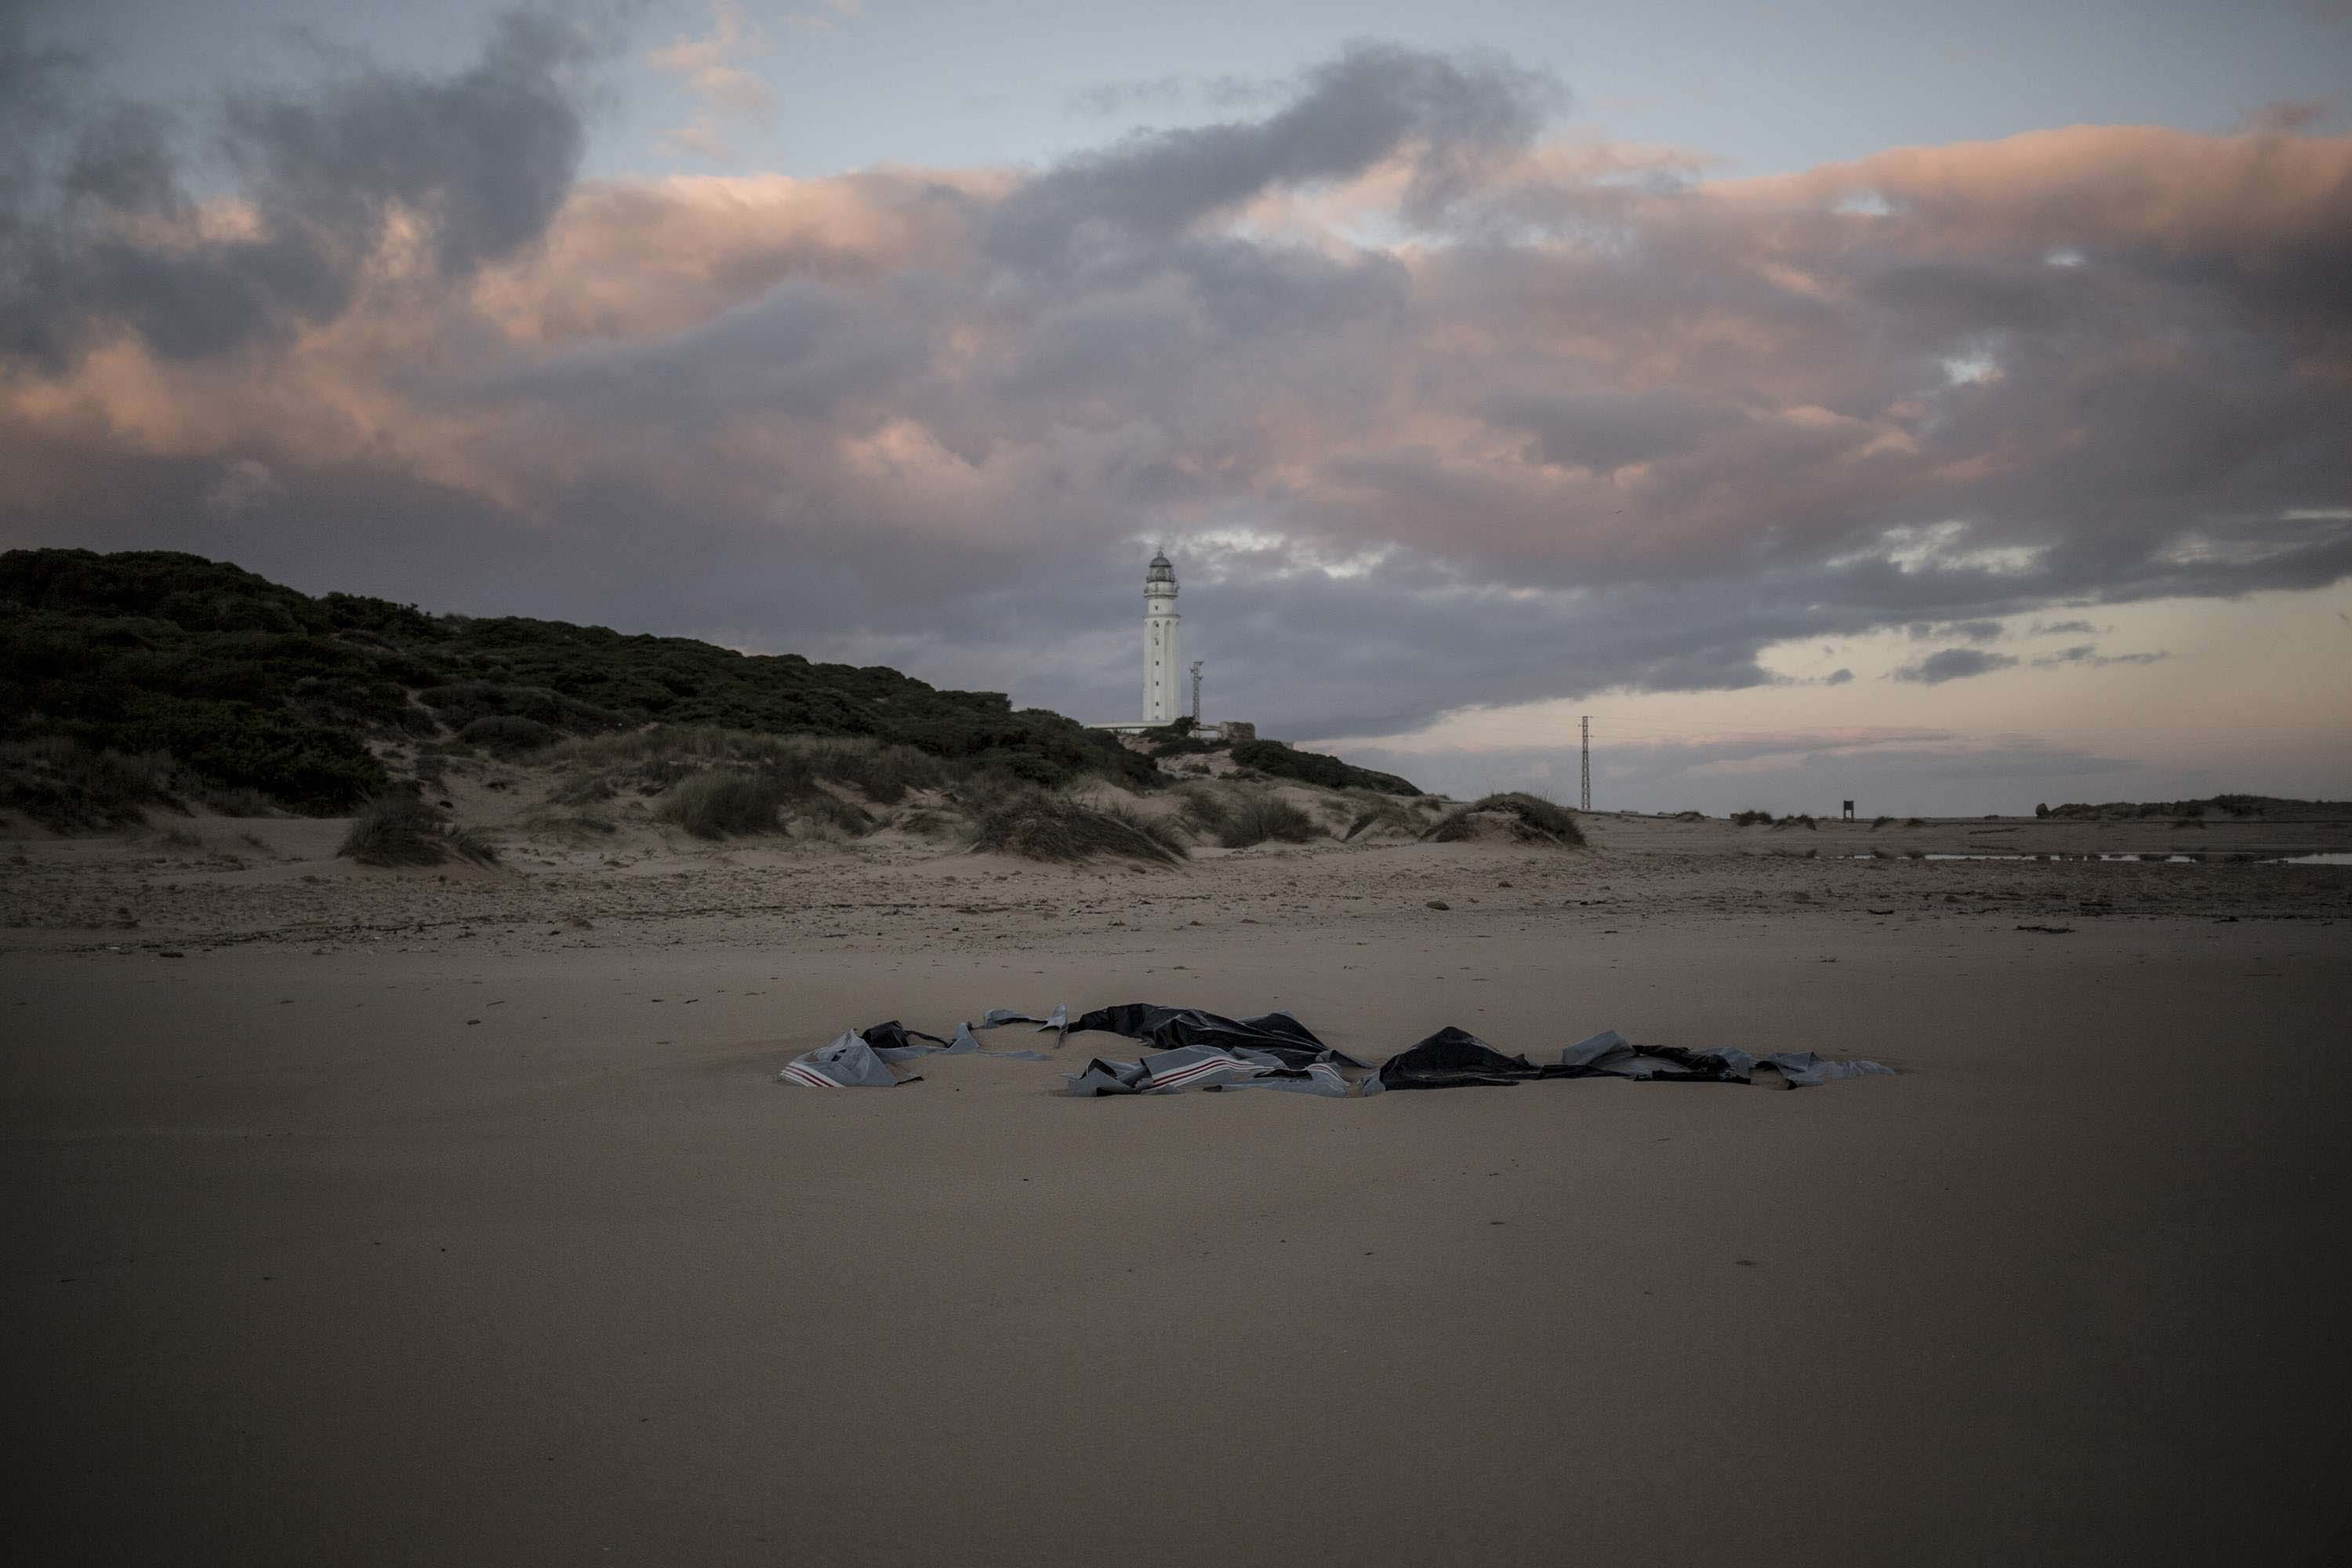 Remains of a dinghy lies on the beach near the village of Canos de Meca in southern Spain, Tuesday, Nov. 6 2018